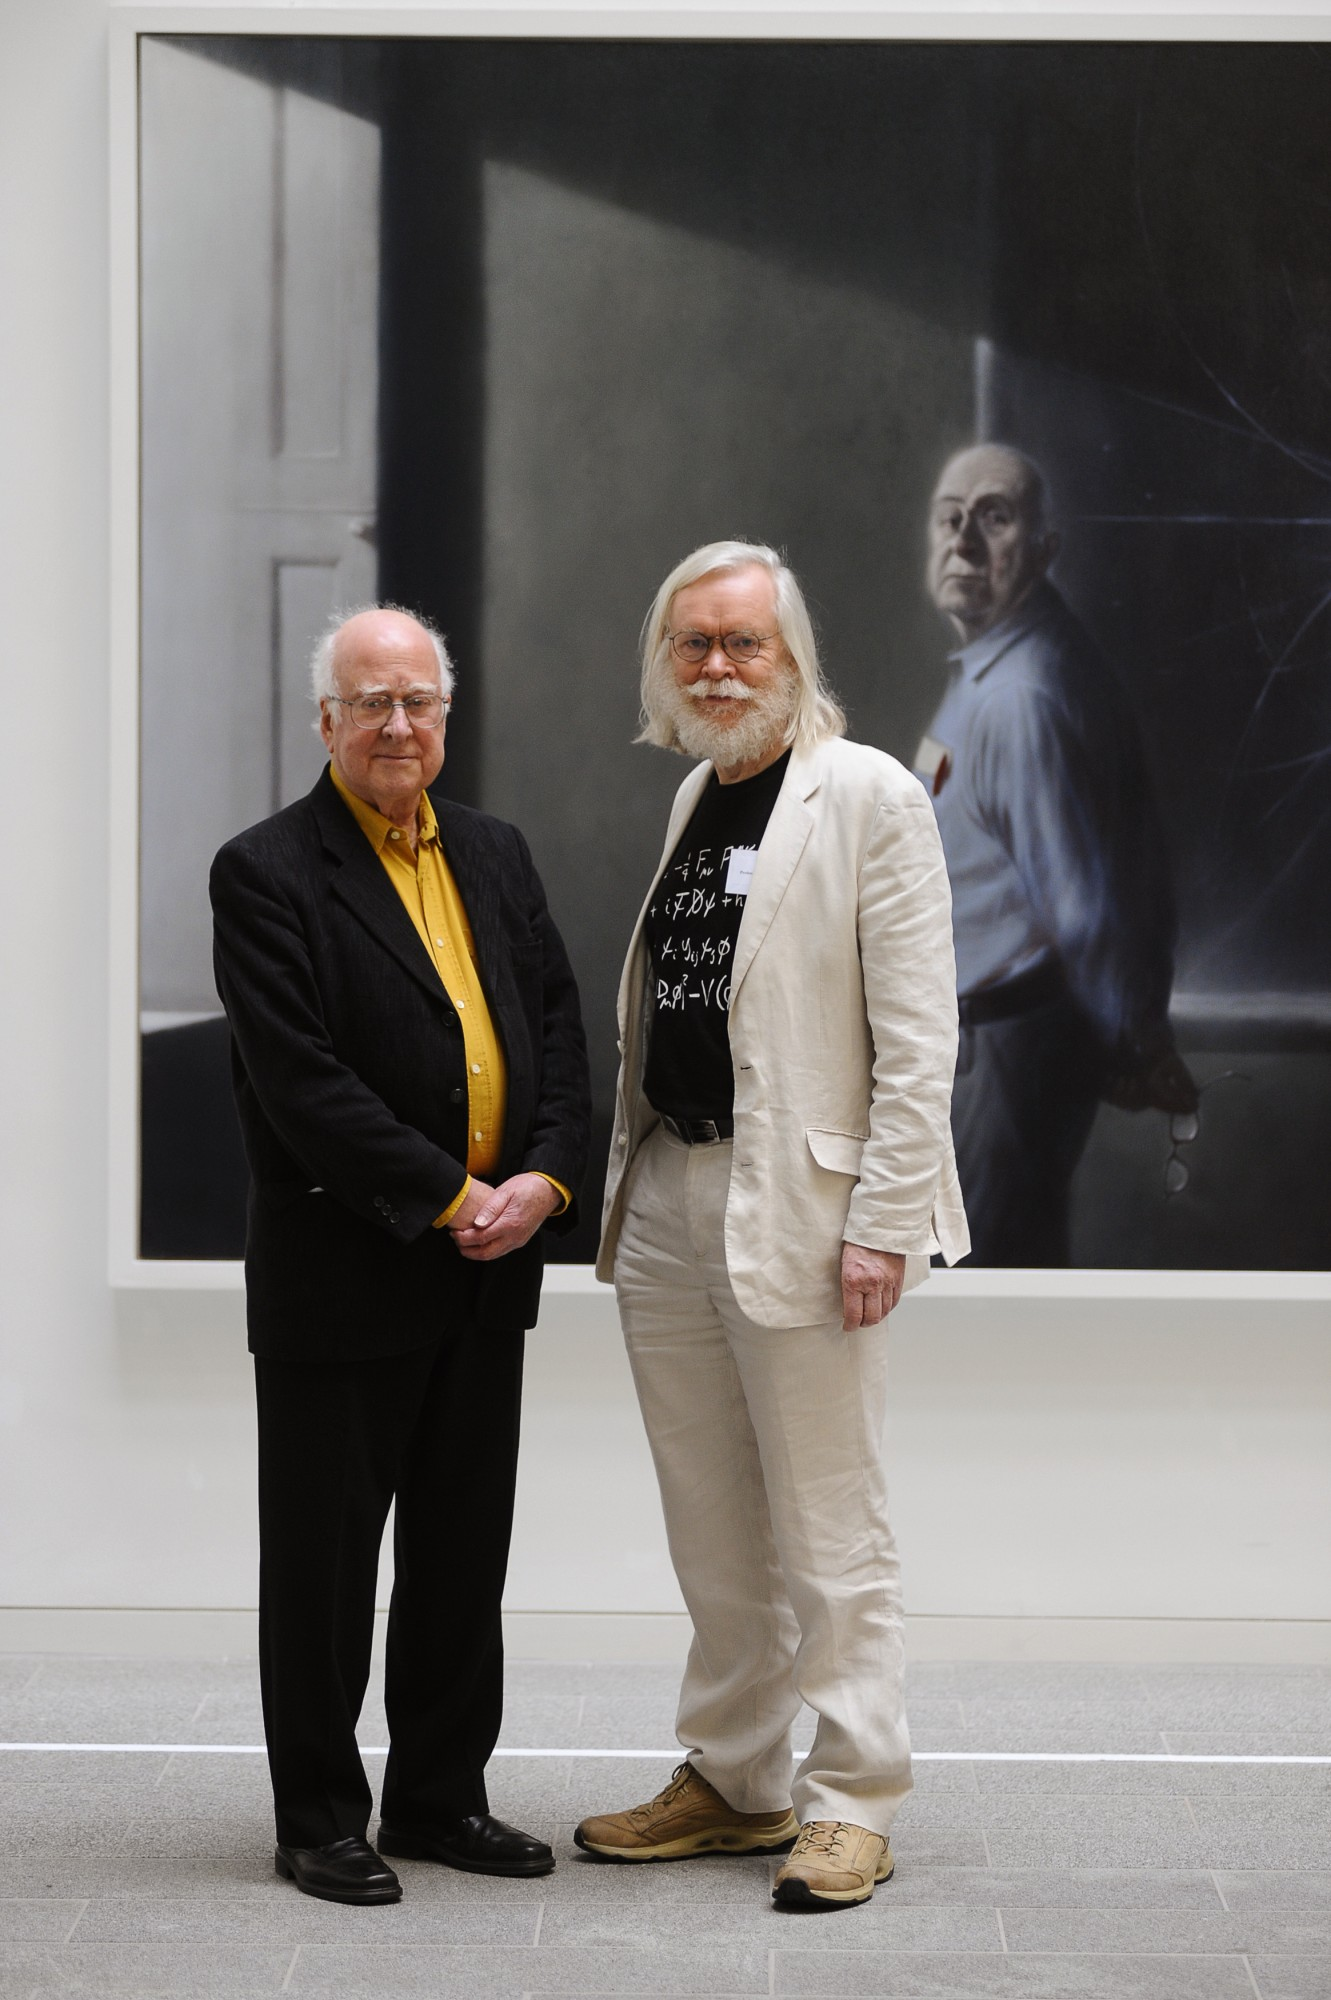 Peter Higgs with John Ellis who gave the Robin Schlapp lecture as part of the celebrations at the portrait unveiling.